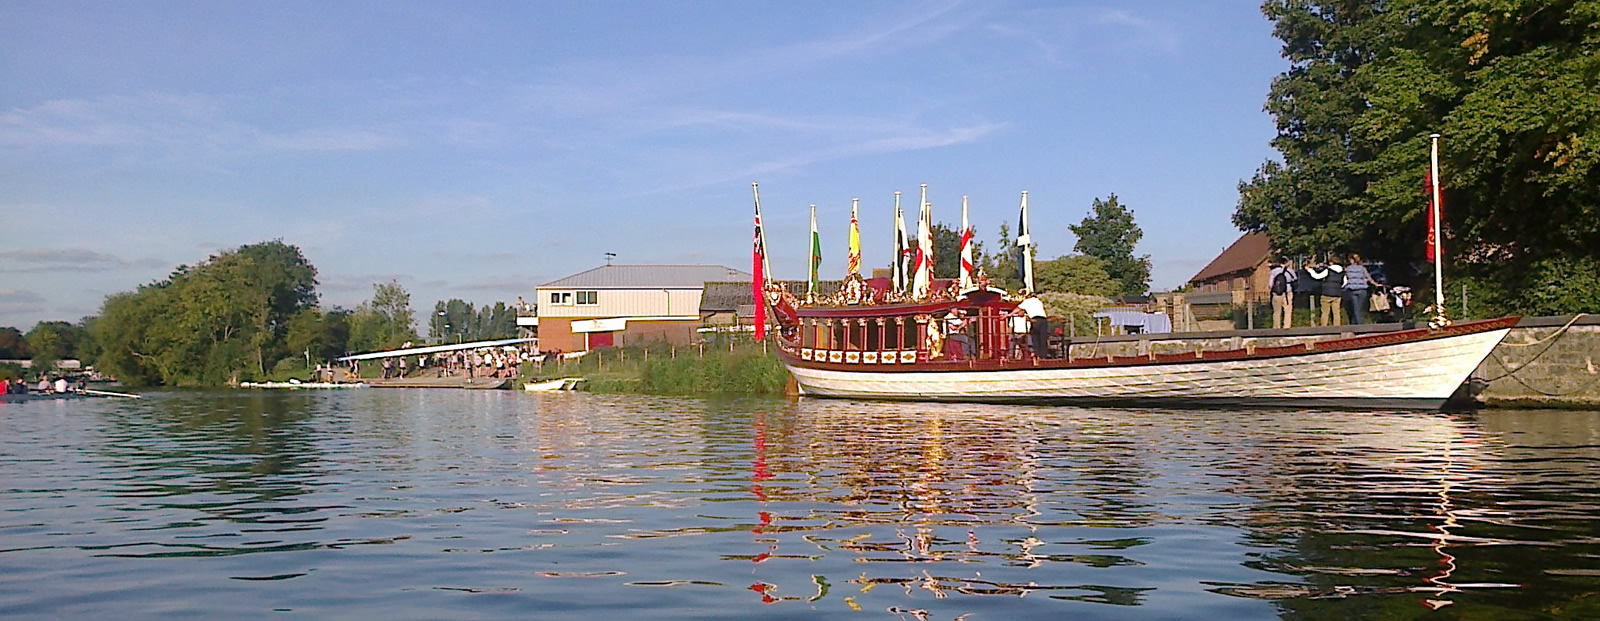 Queens Royal Barge Gloriana